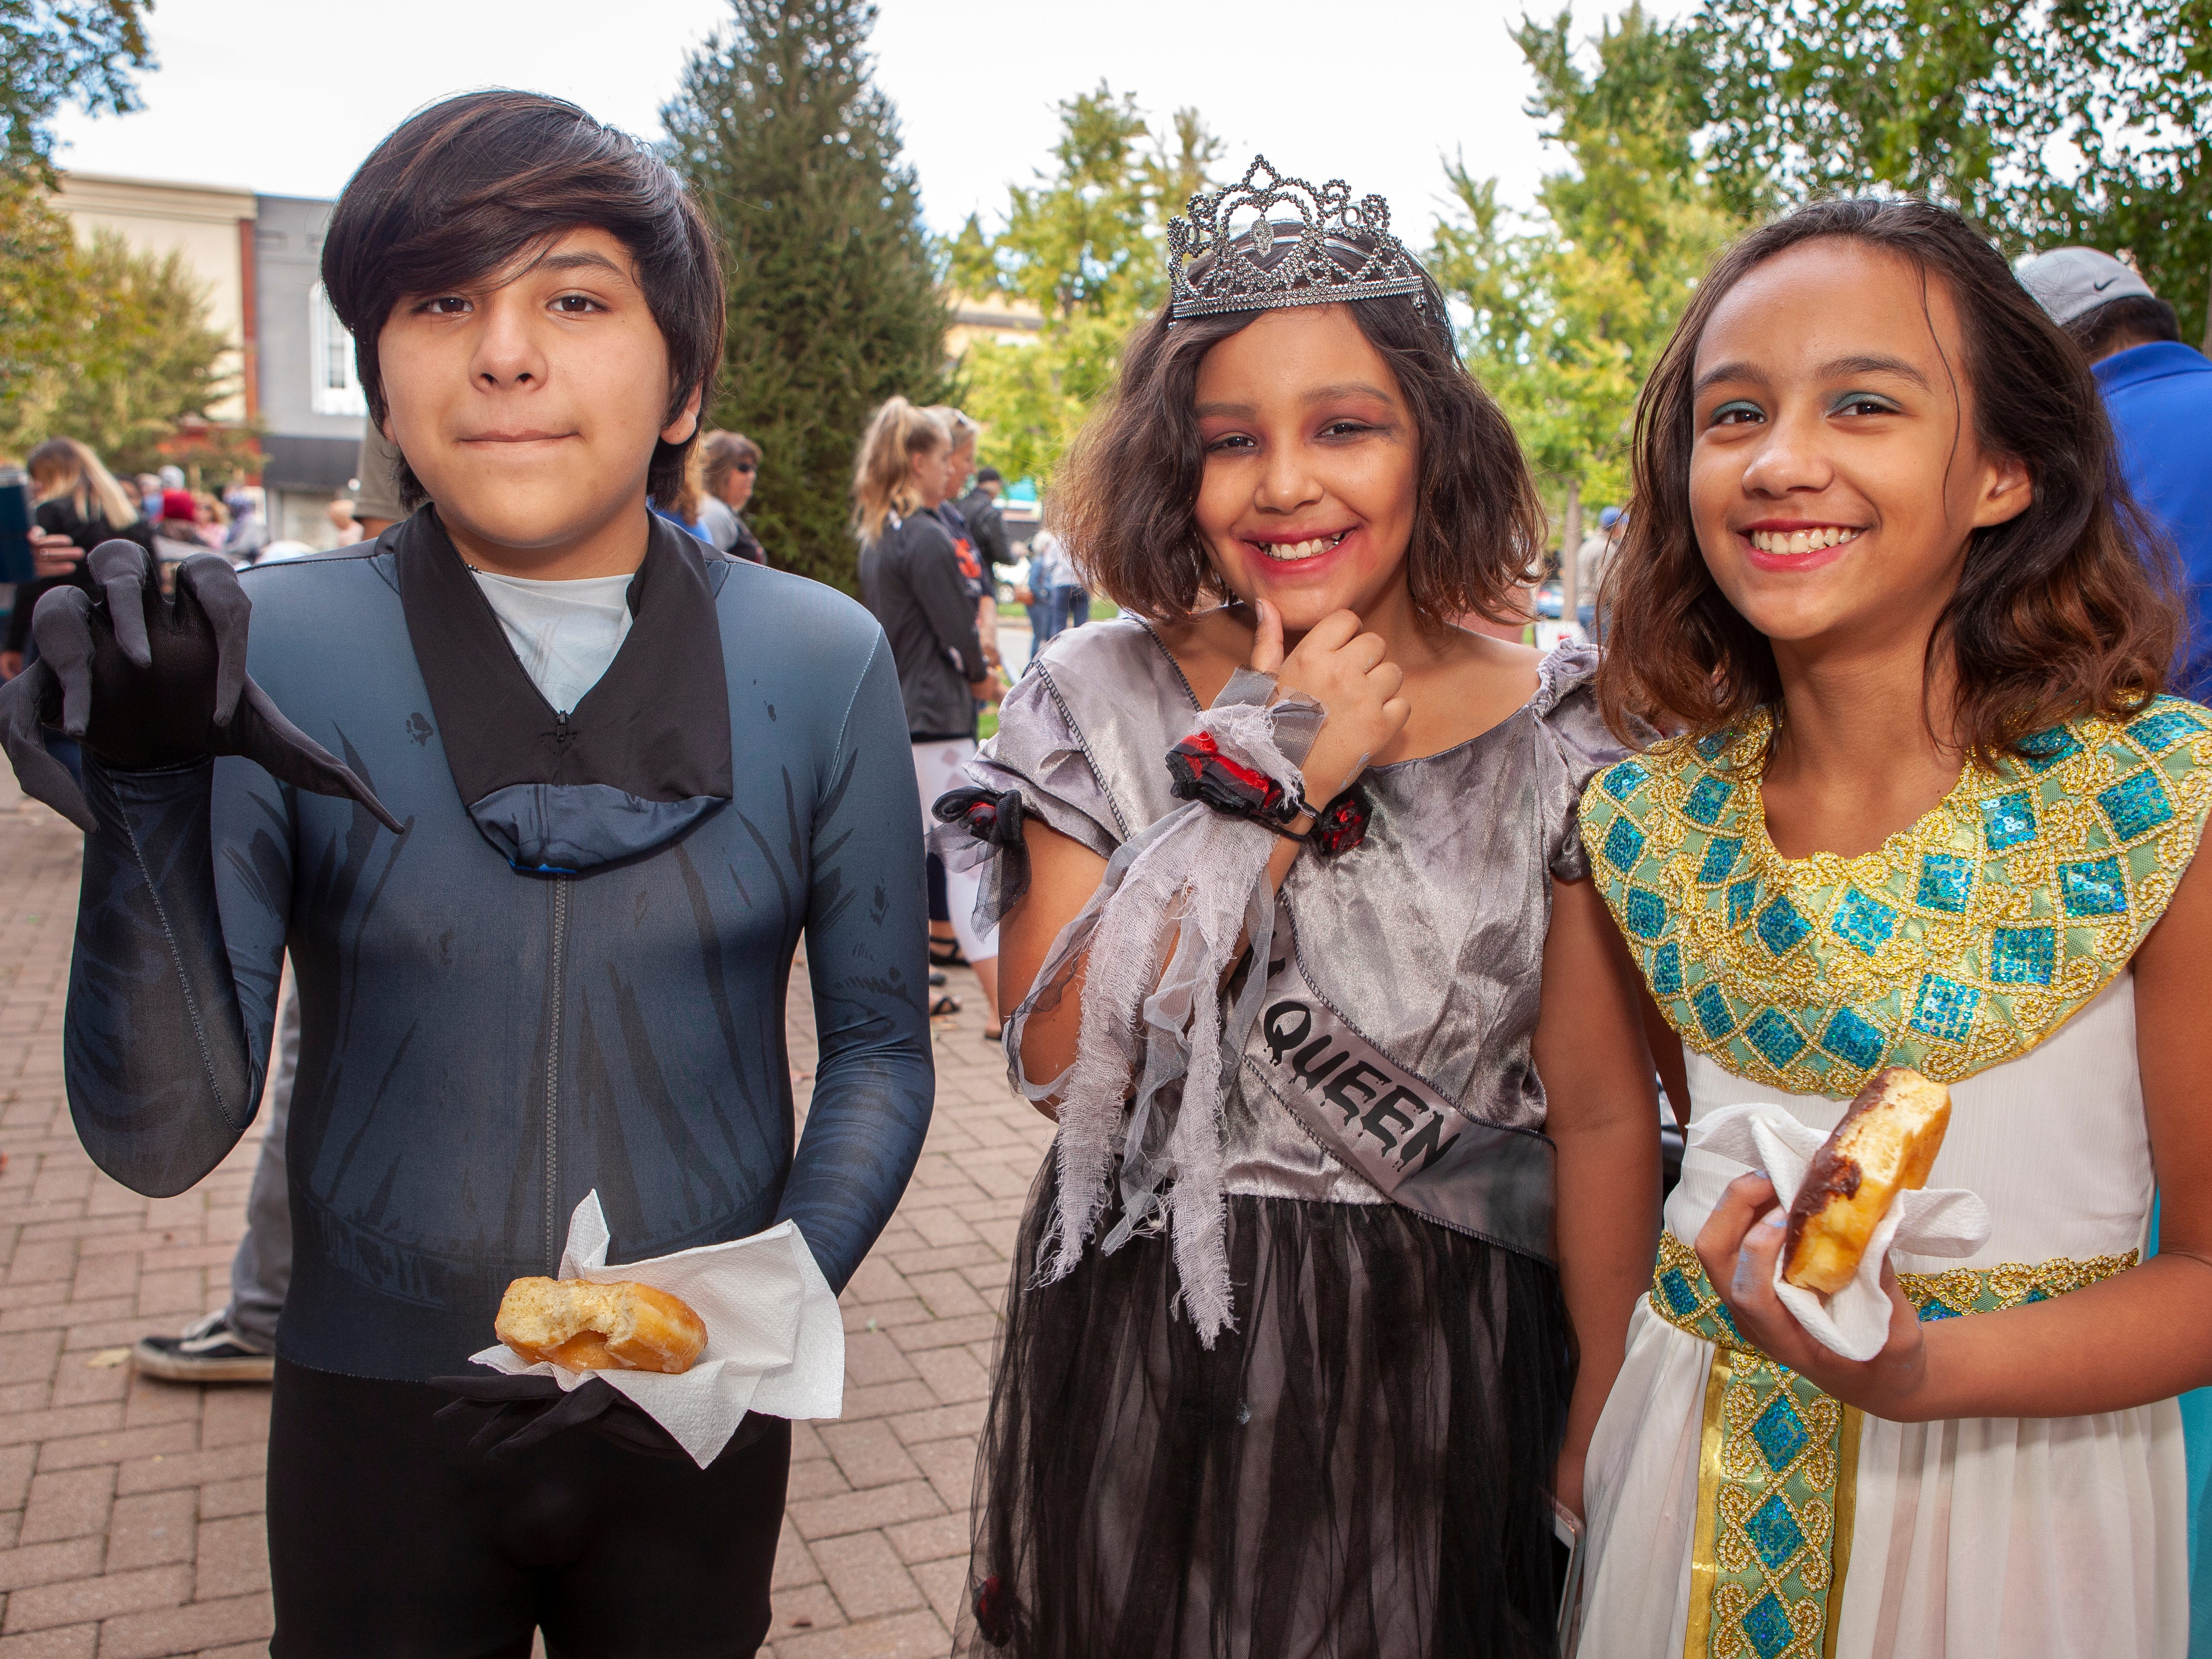 Diego Rojas, Kiara Brown, Ameera Brown were on hand for the Murfreesboro Loves celebration on Sunday, Oct. 28, 2018.